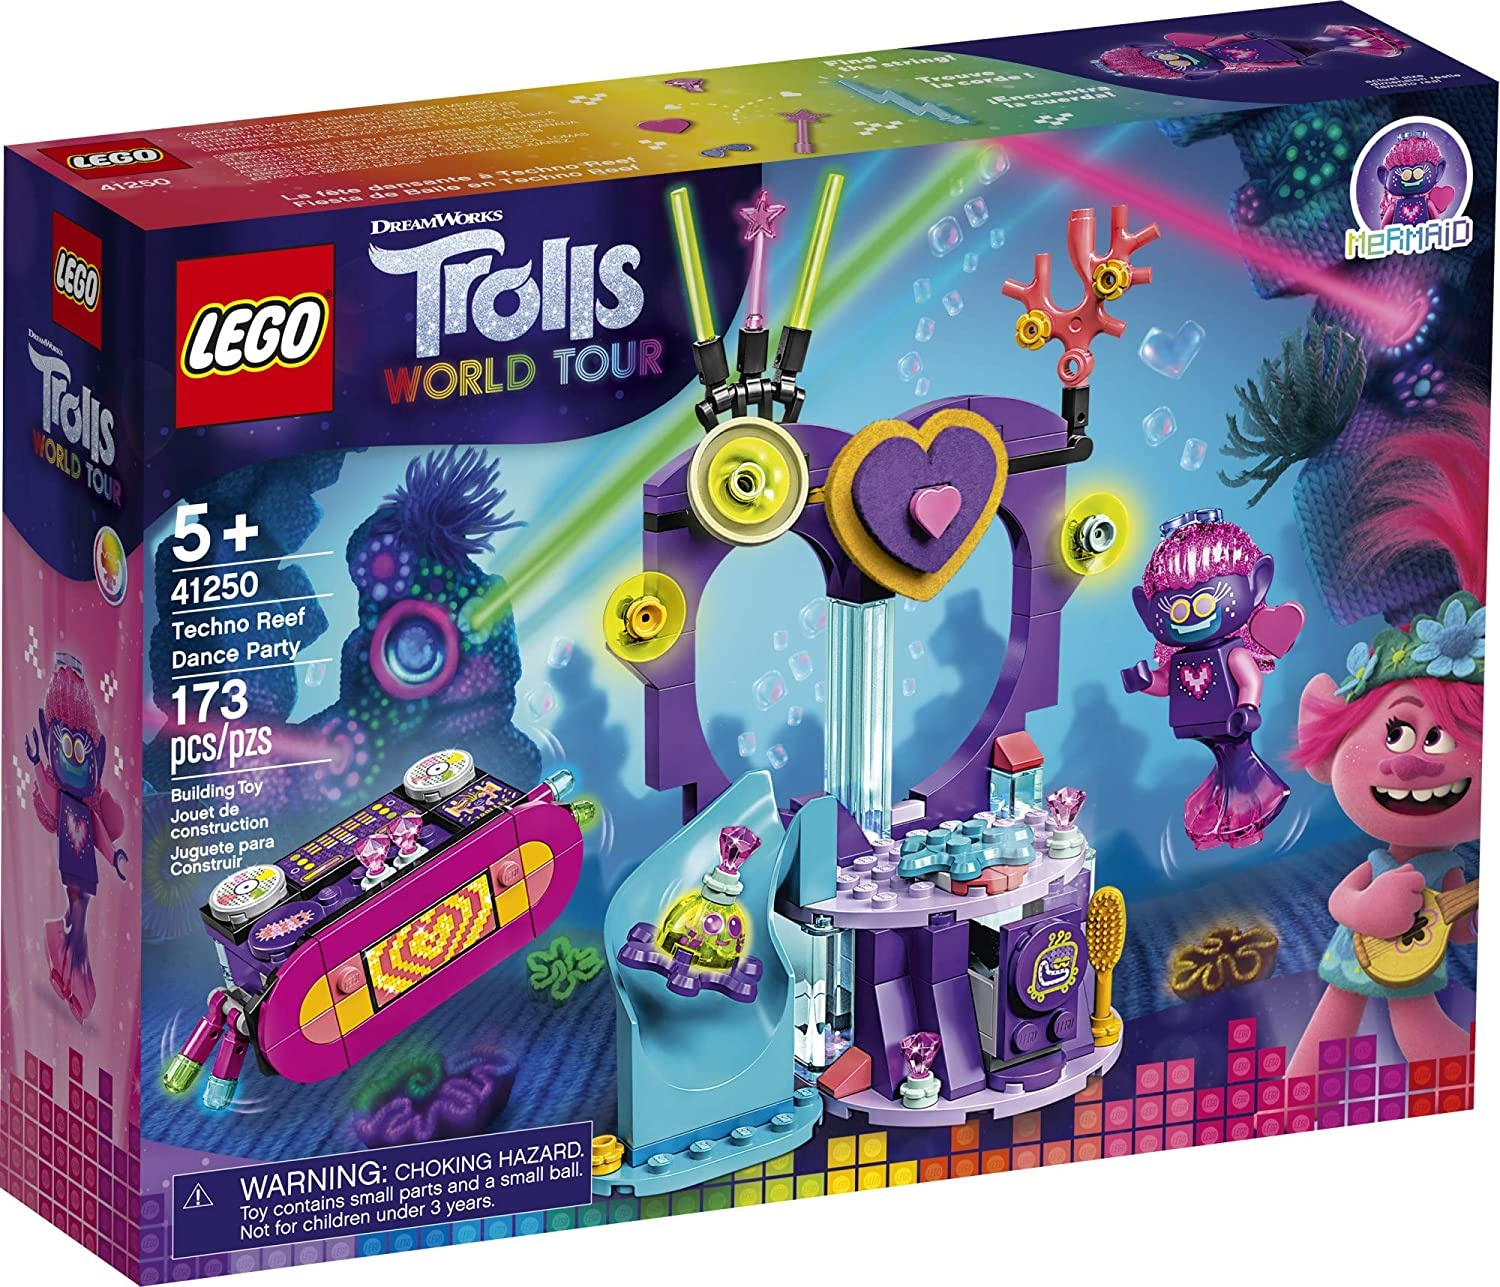 Trolls World Tour Techno Reef Dance Party